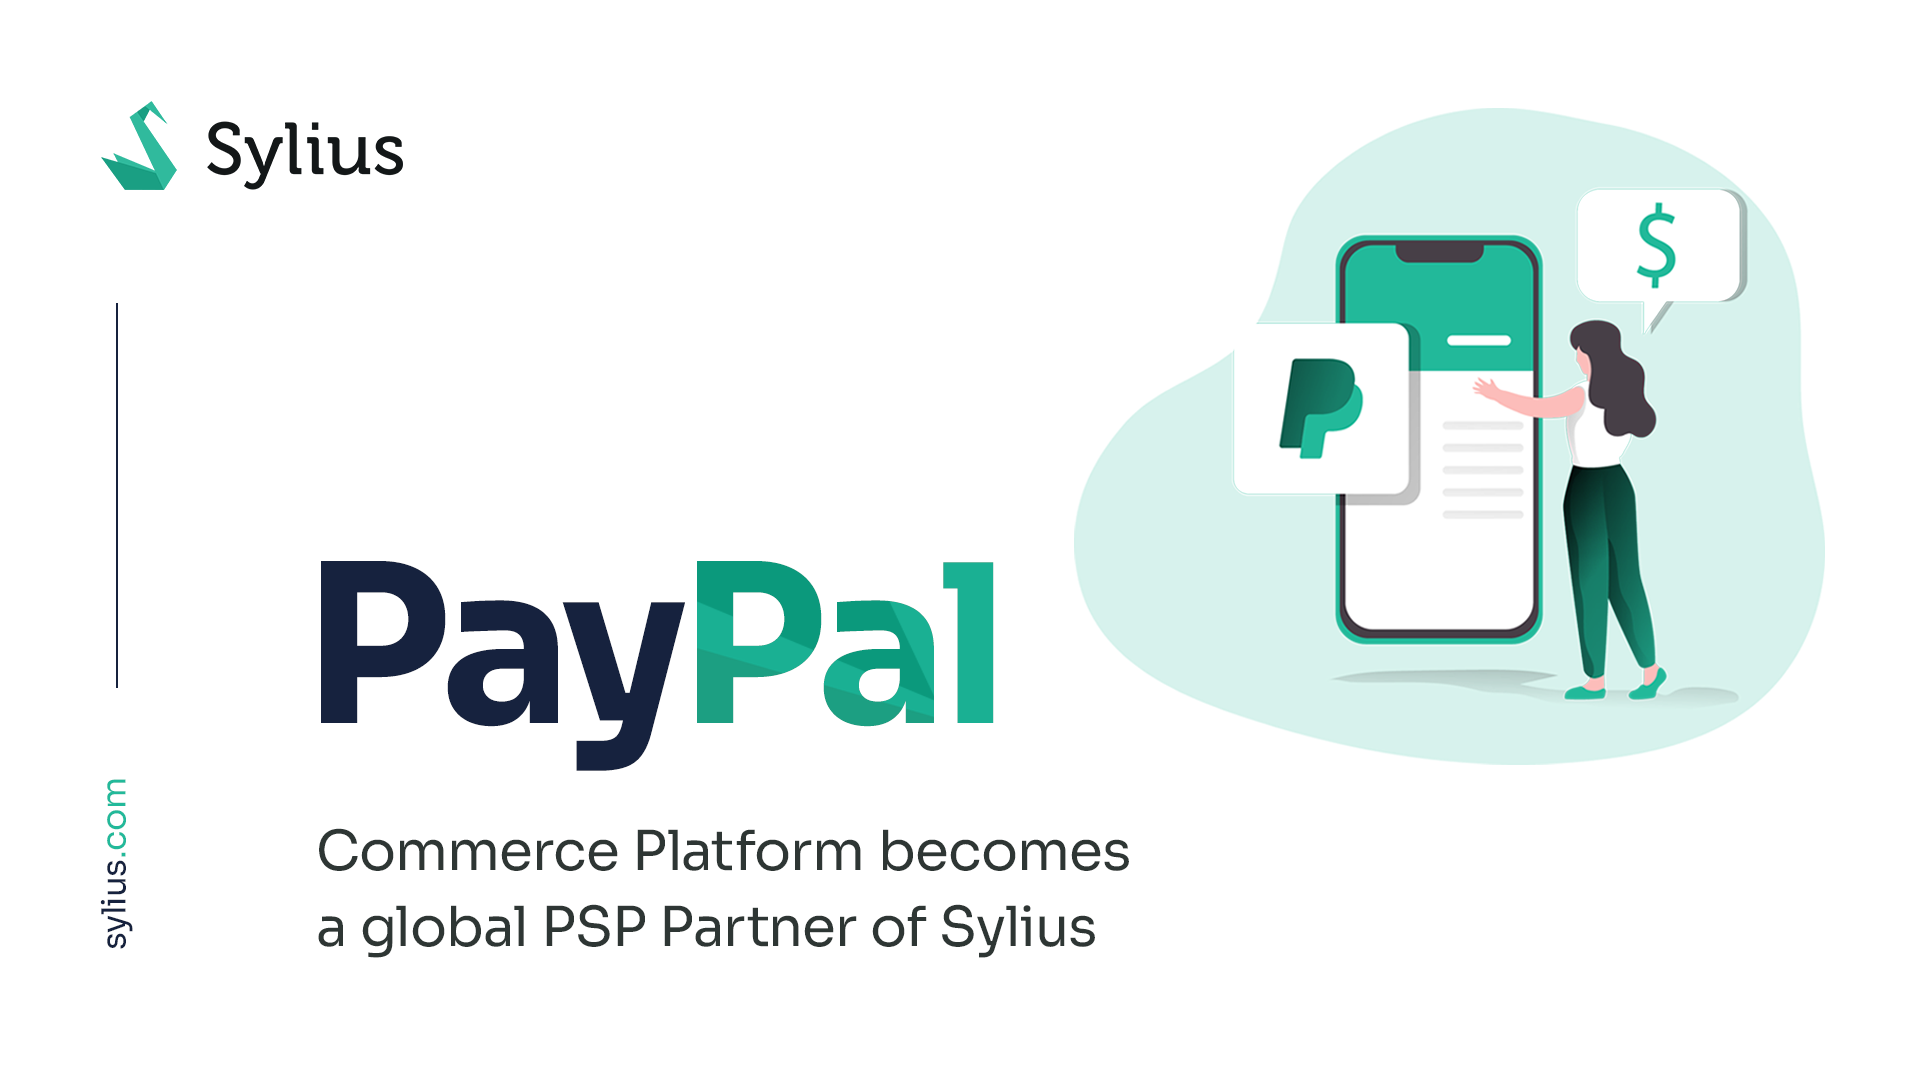 PayPal Commerce Platform becomes a global PSP Partner of Sylius